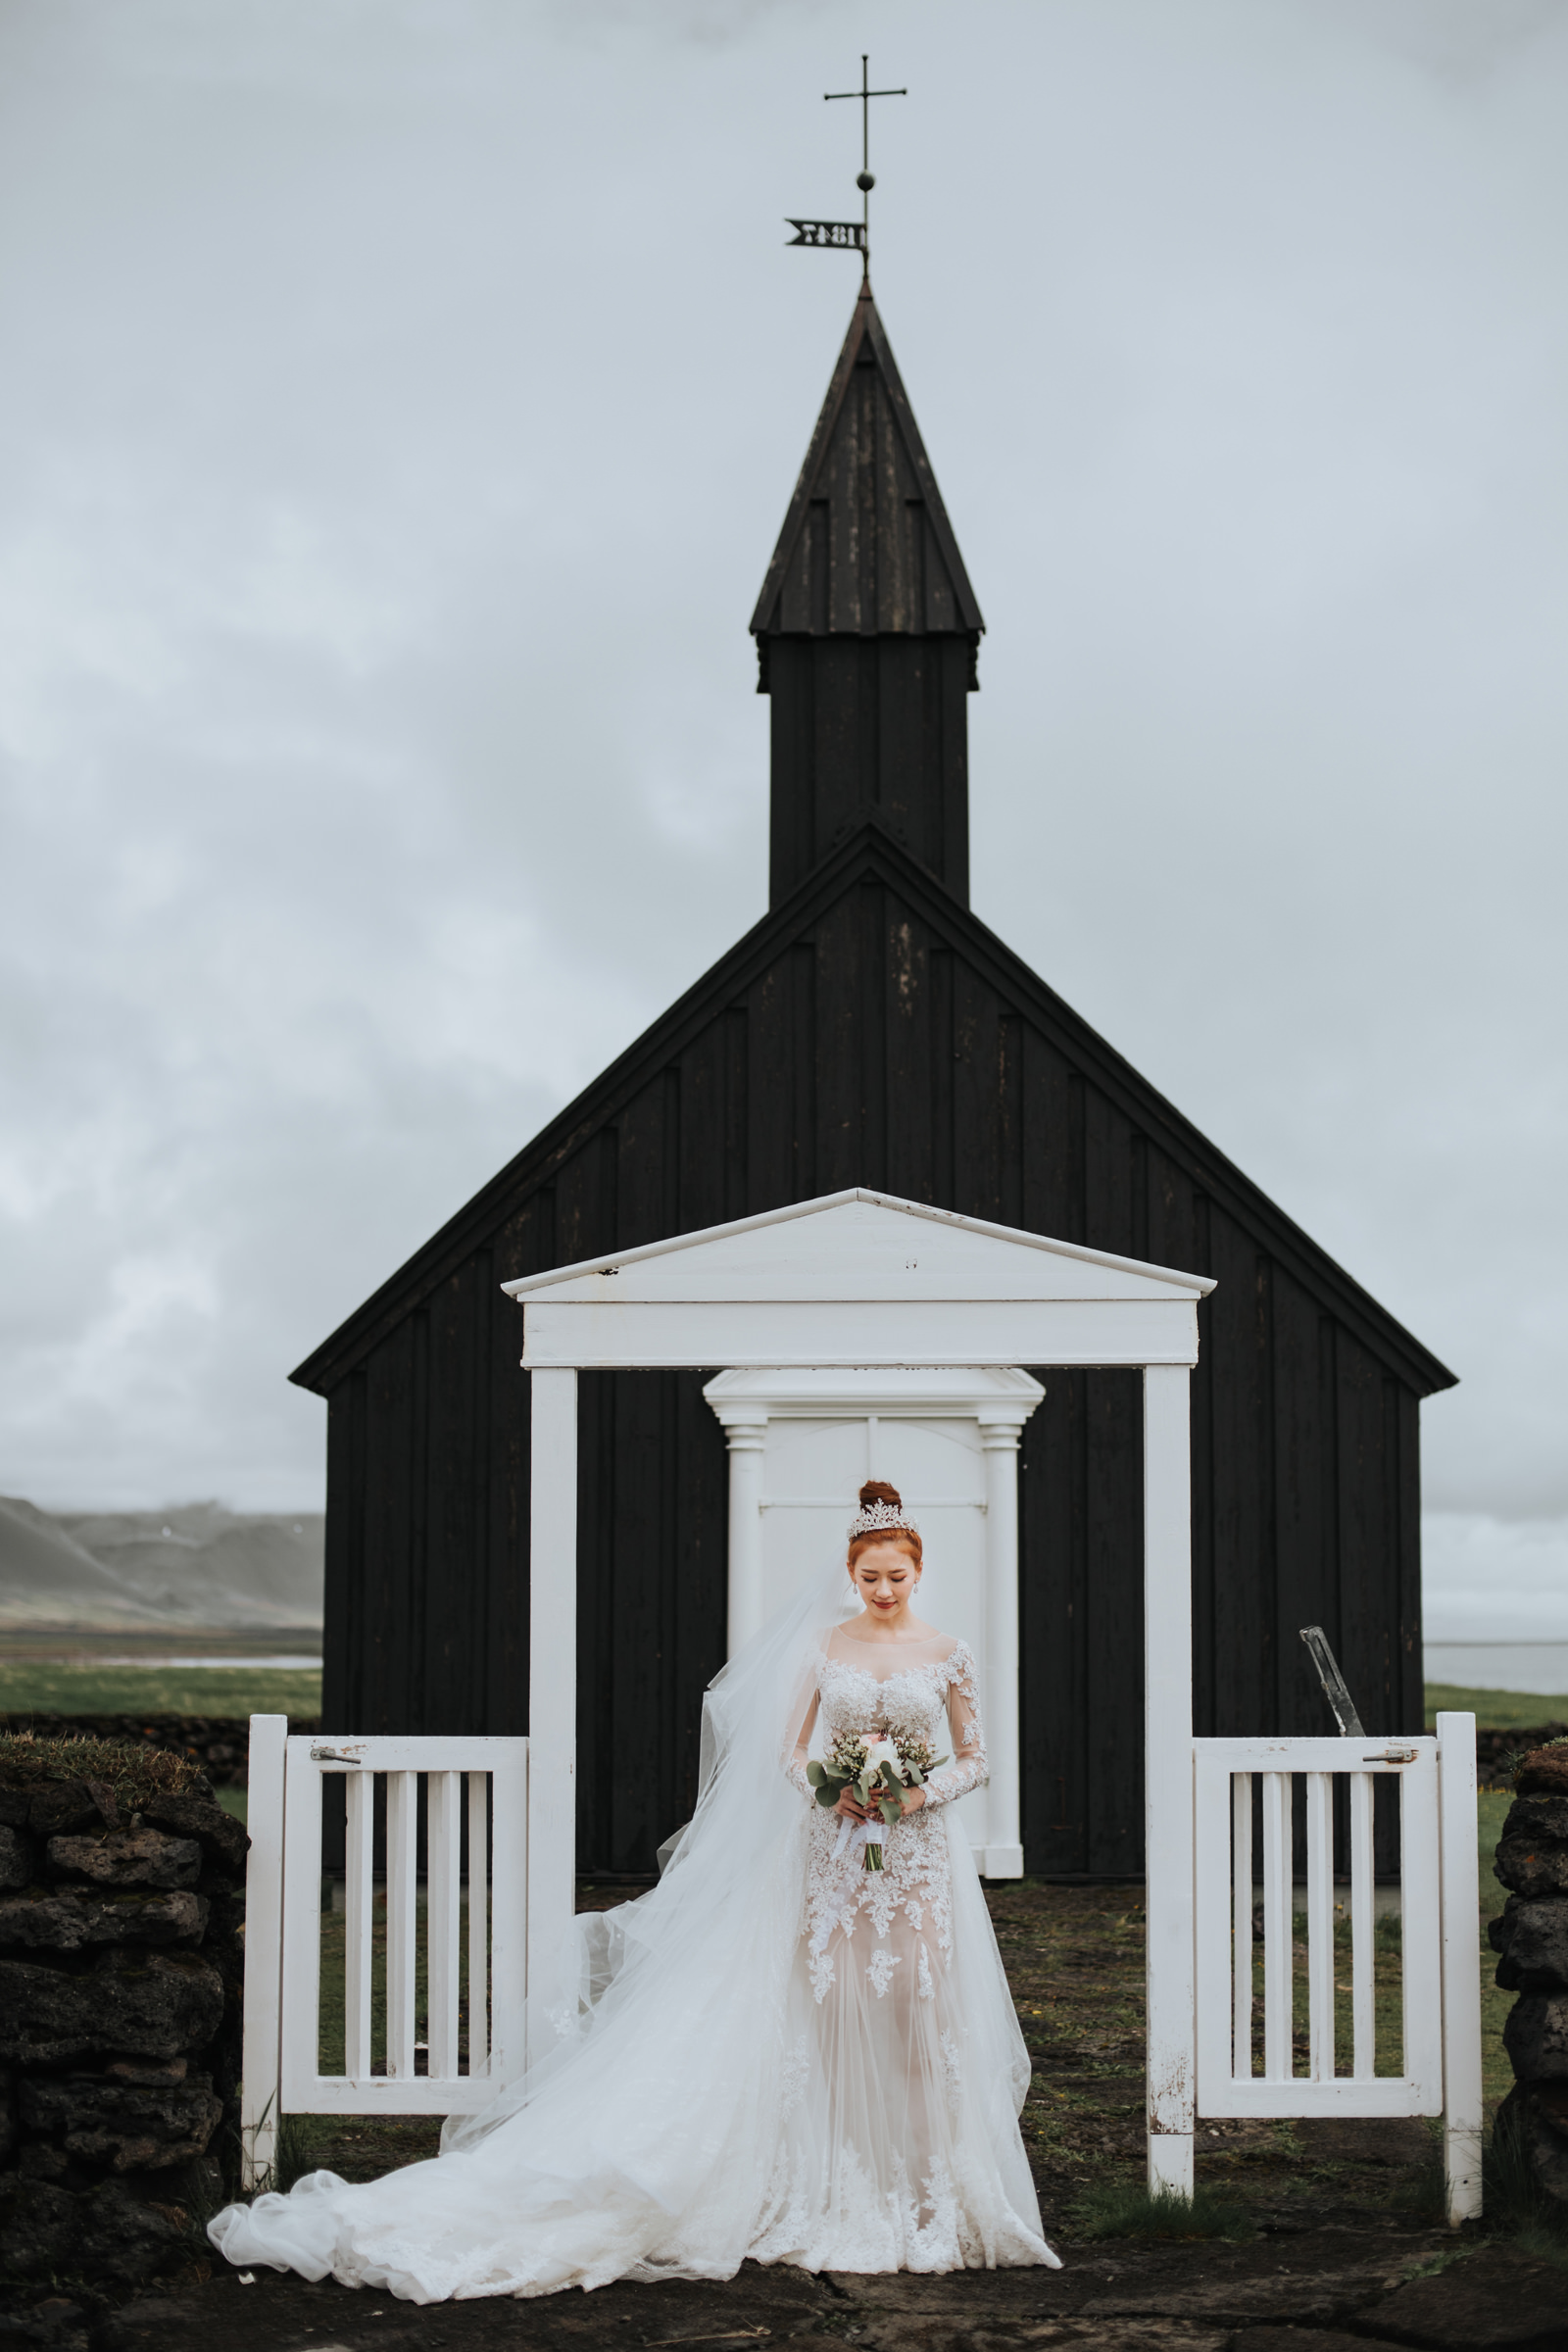 Bride poses in front of rustic church - Photo by MunKeat Photography Studio